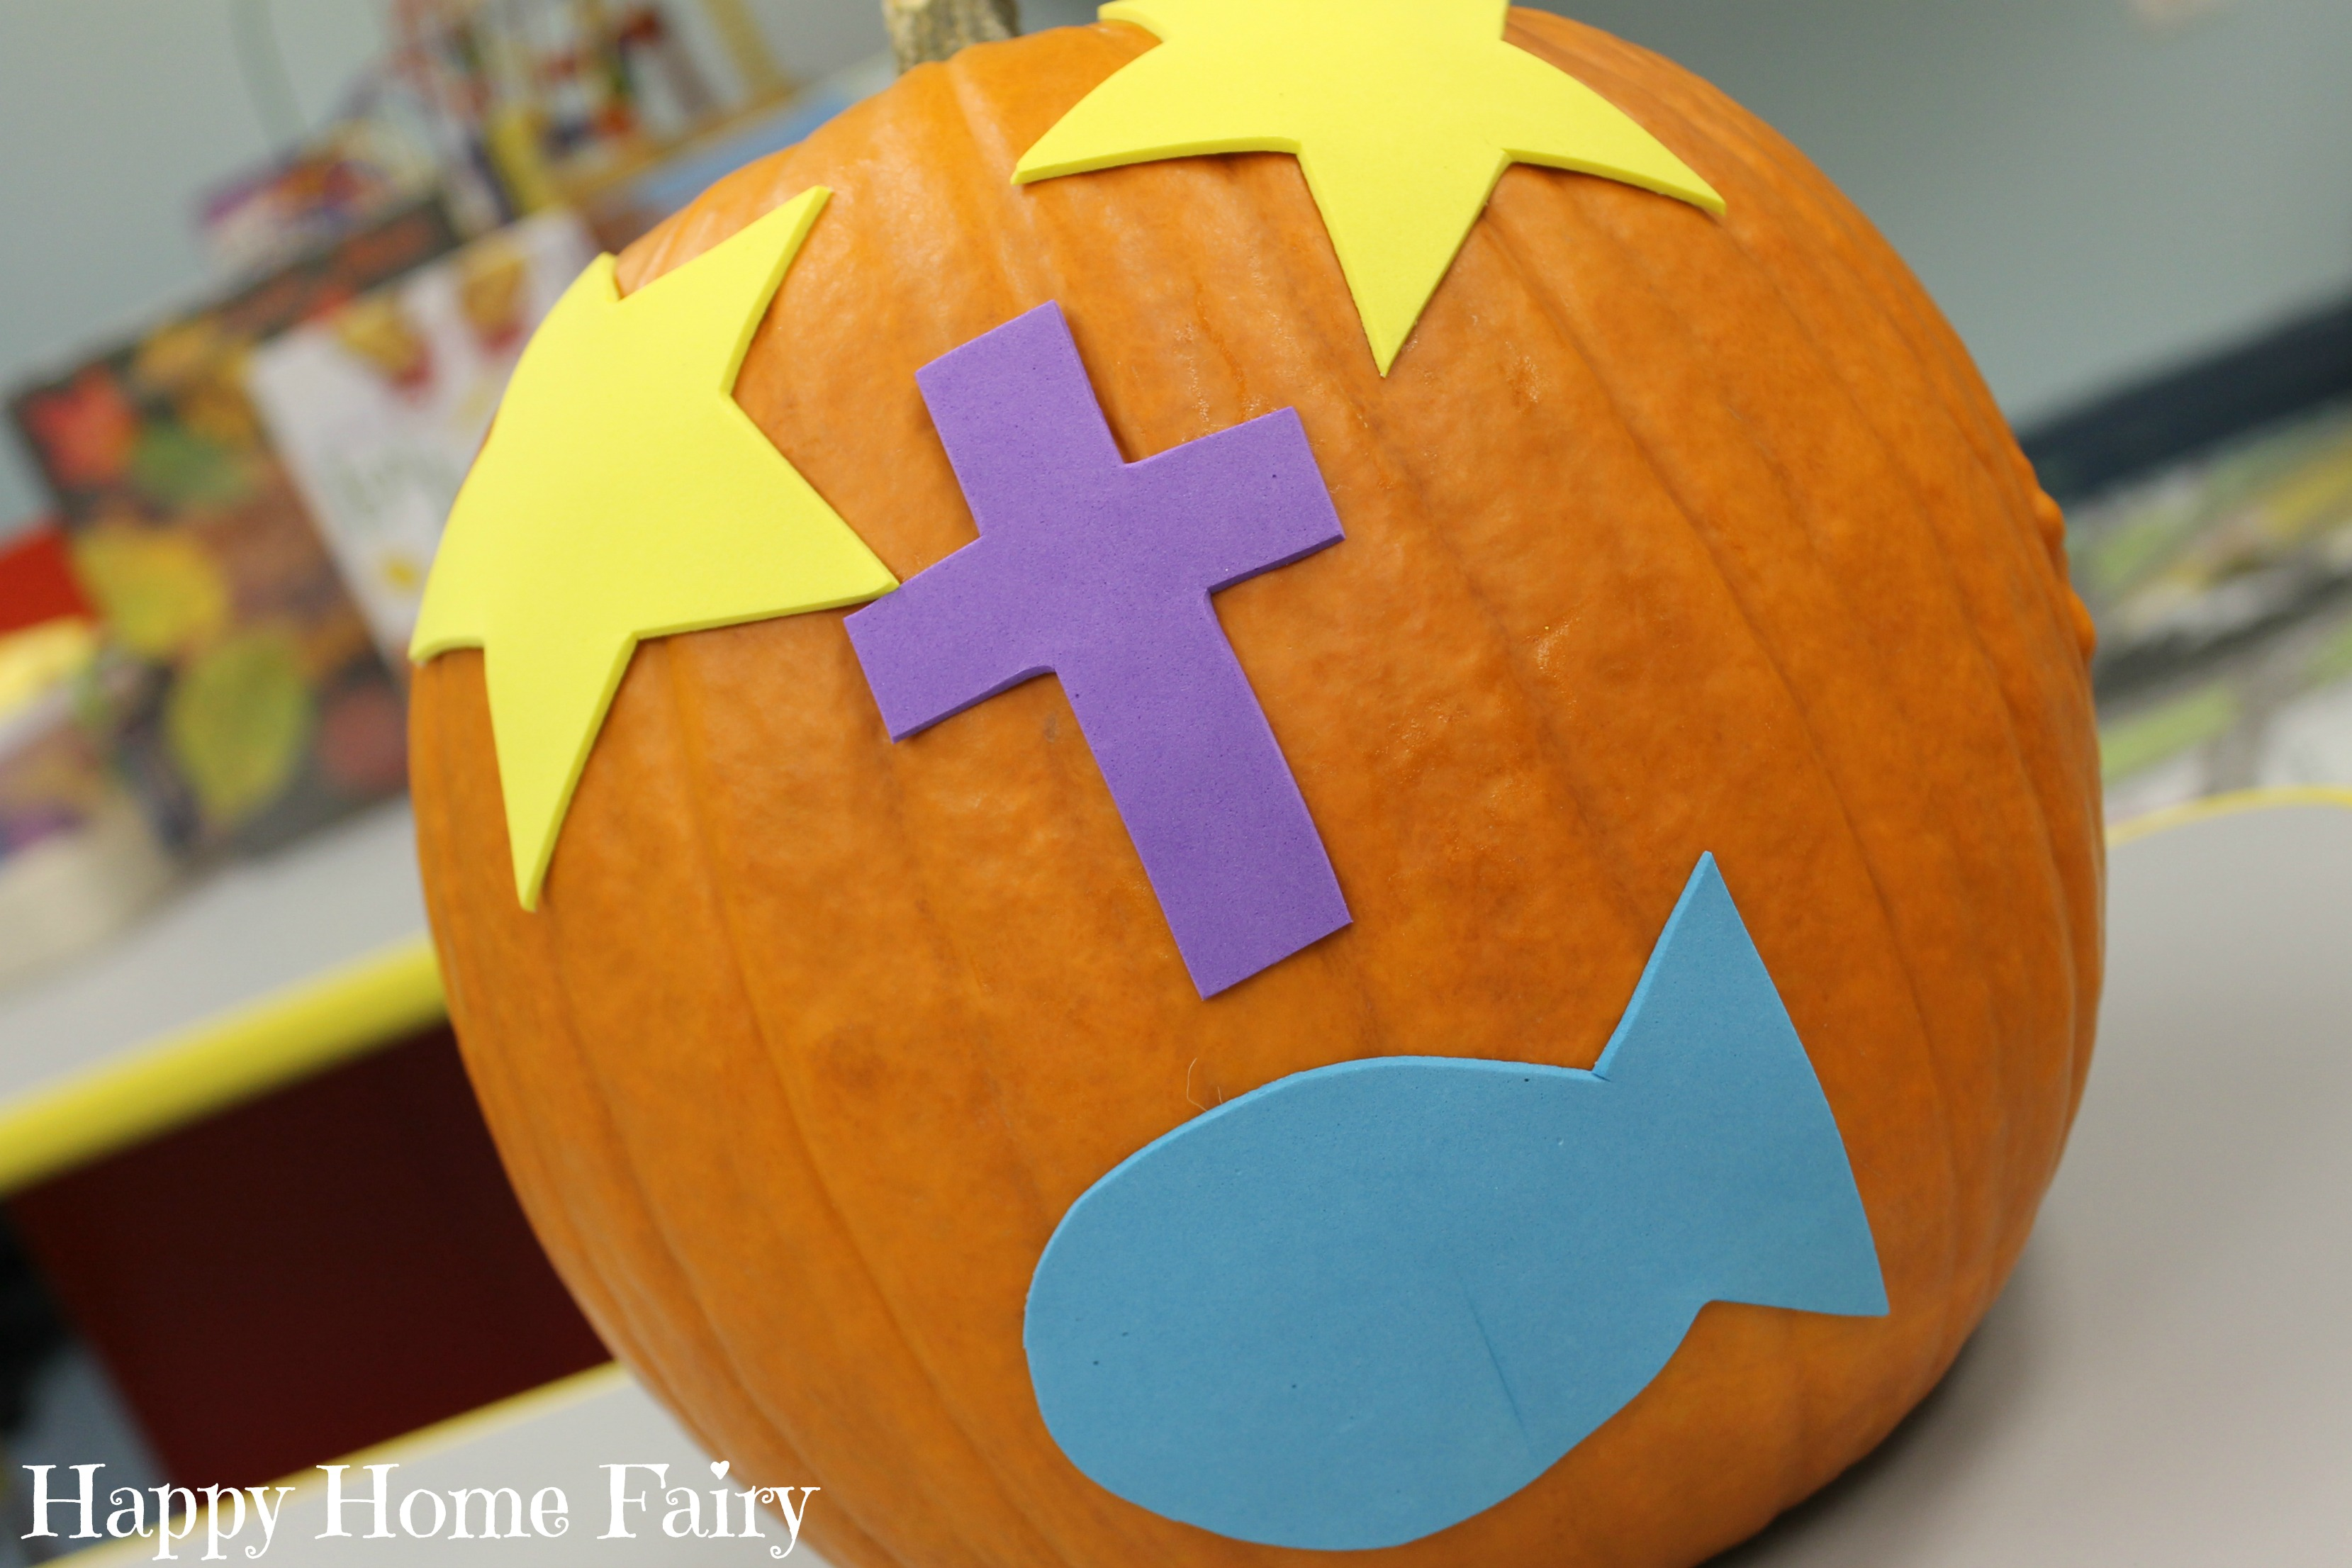 The Gospel Pumpkin 1